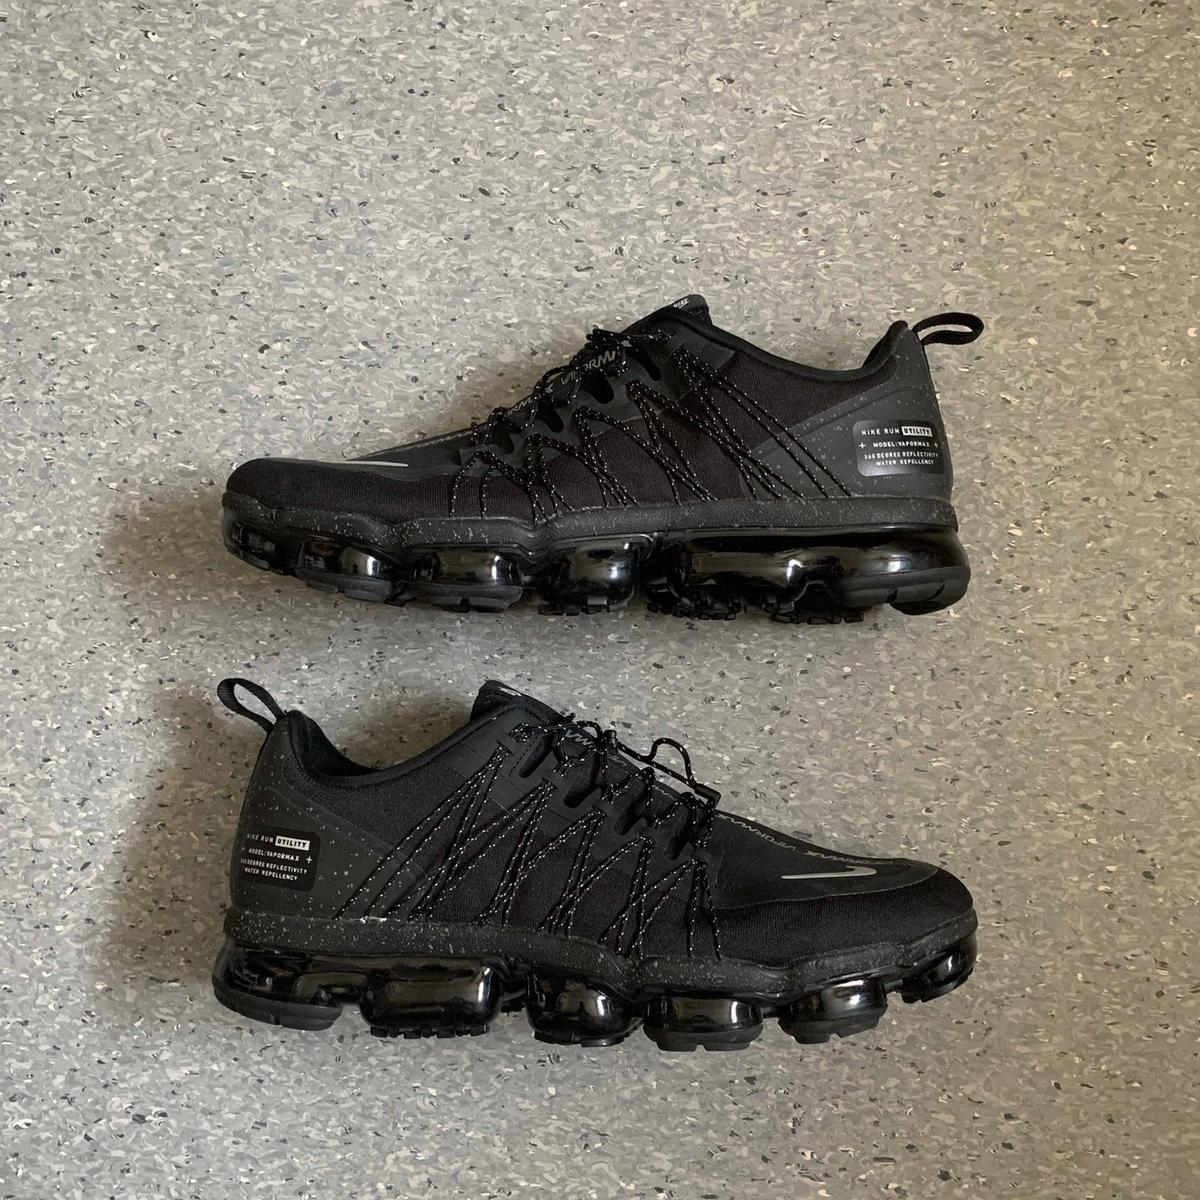 Nike Air Vapormax Run Utility - UK.  £400+ StockX  Selling for cheap due to damaged box and minor scuff marks.